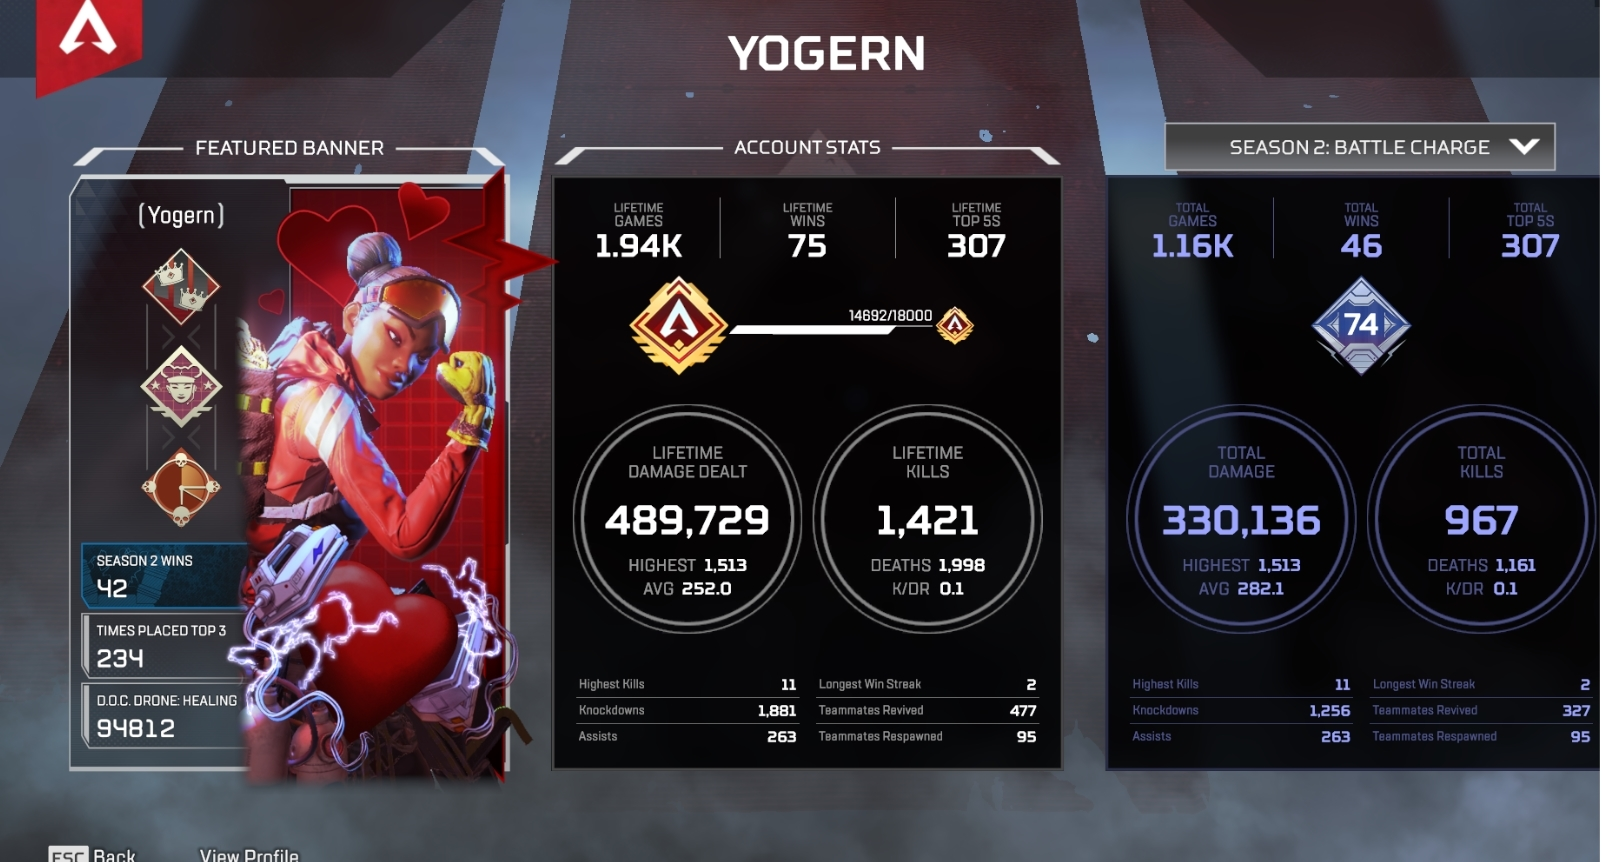 Re: Major Apex BUG wrong stats may affect the game experience for